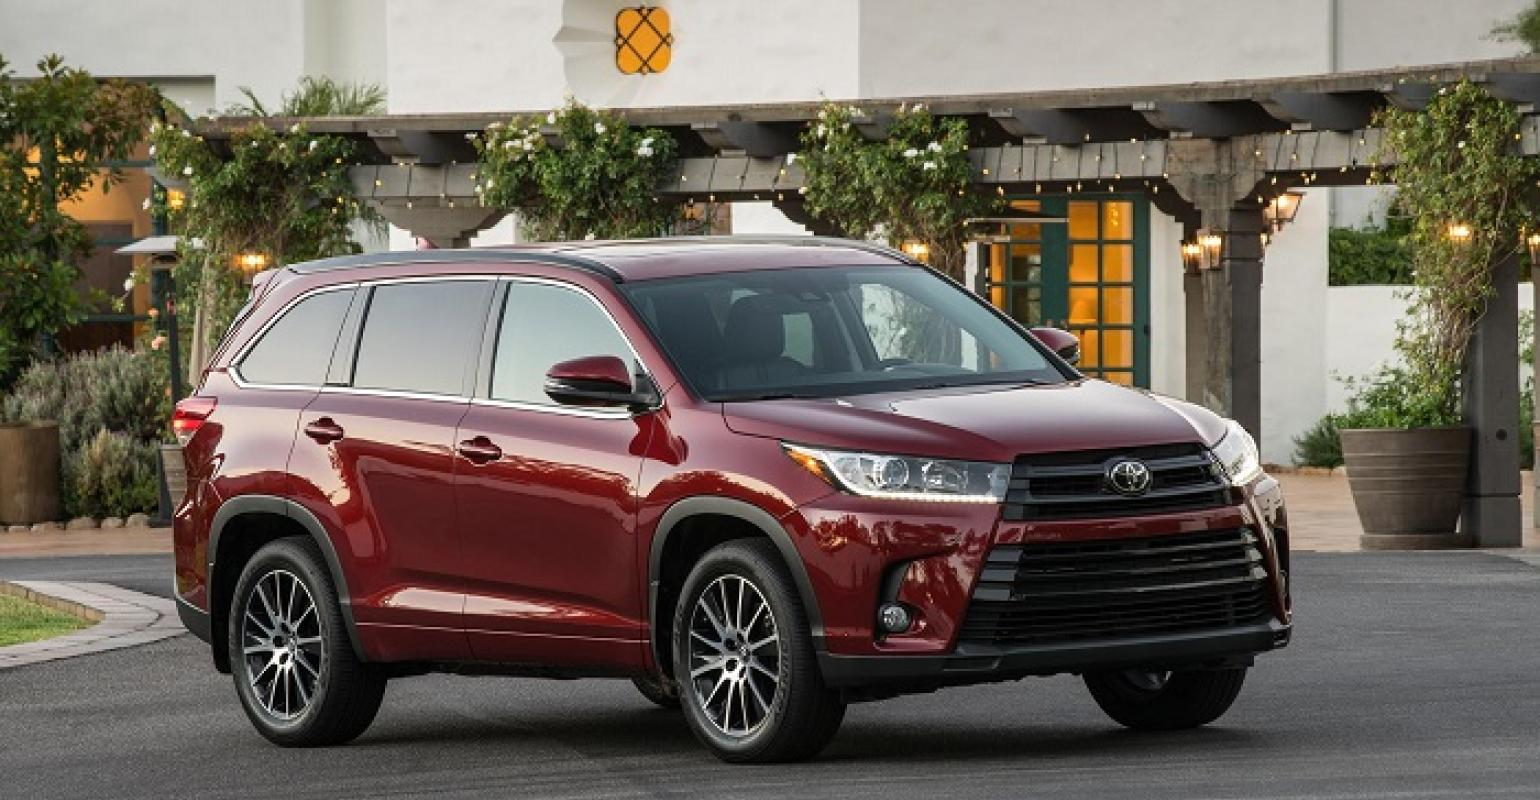 Highlander Fuel Economy Grows For 3917